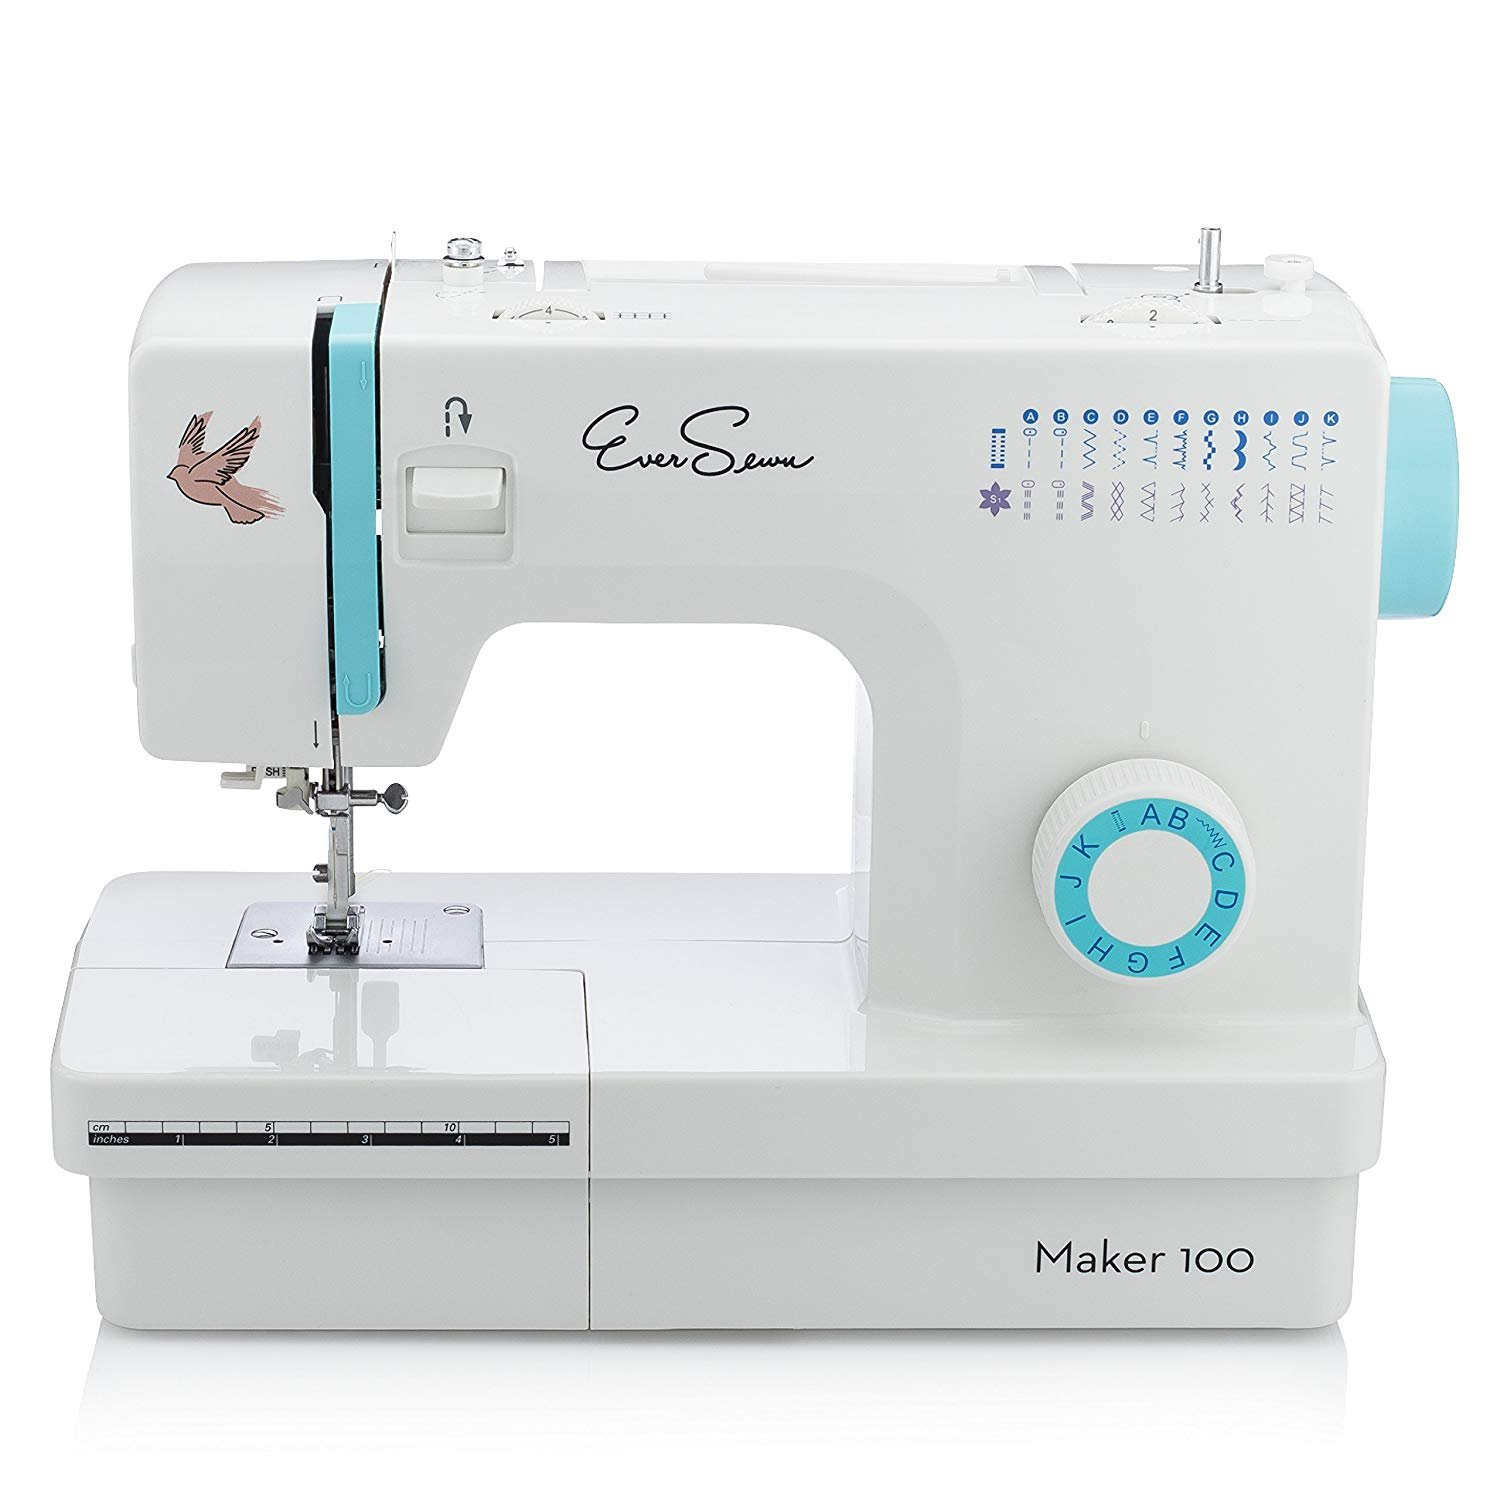 EverSewn Maker 100 - 21 Stitch